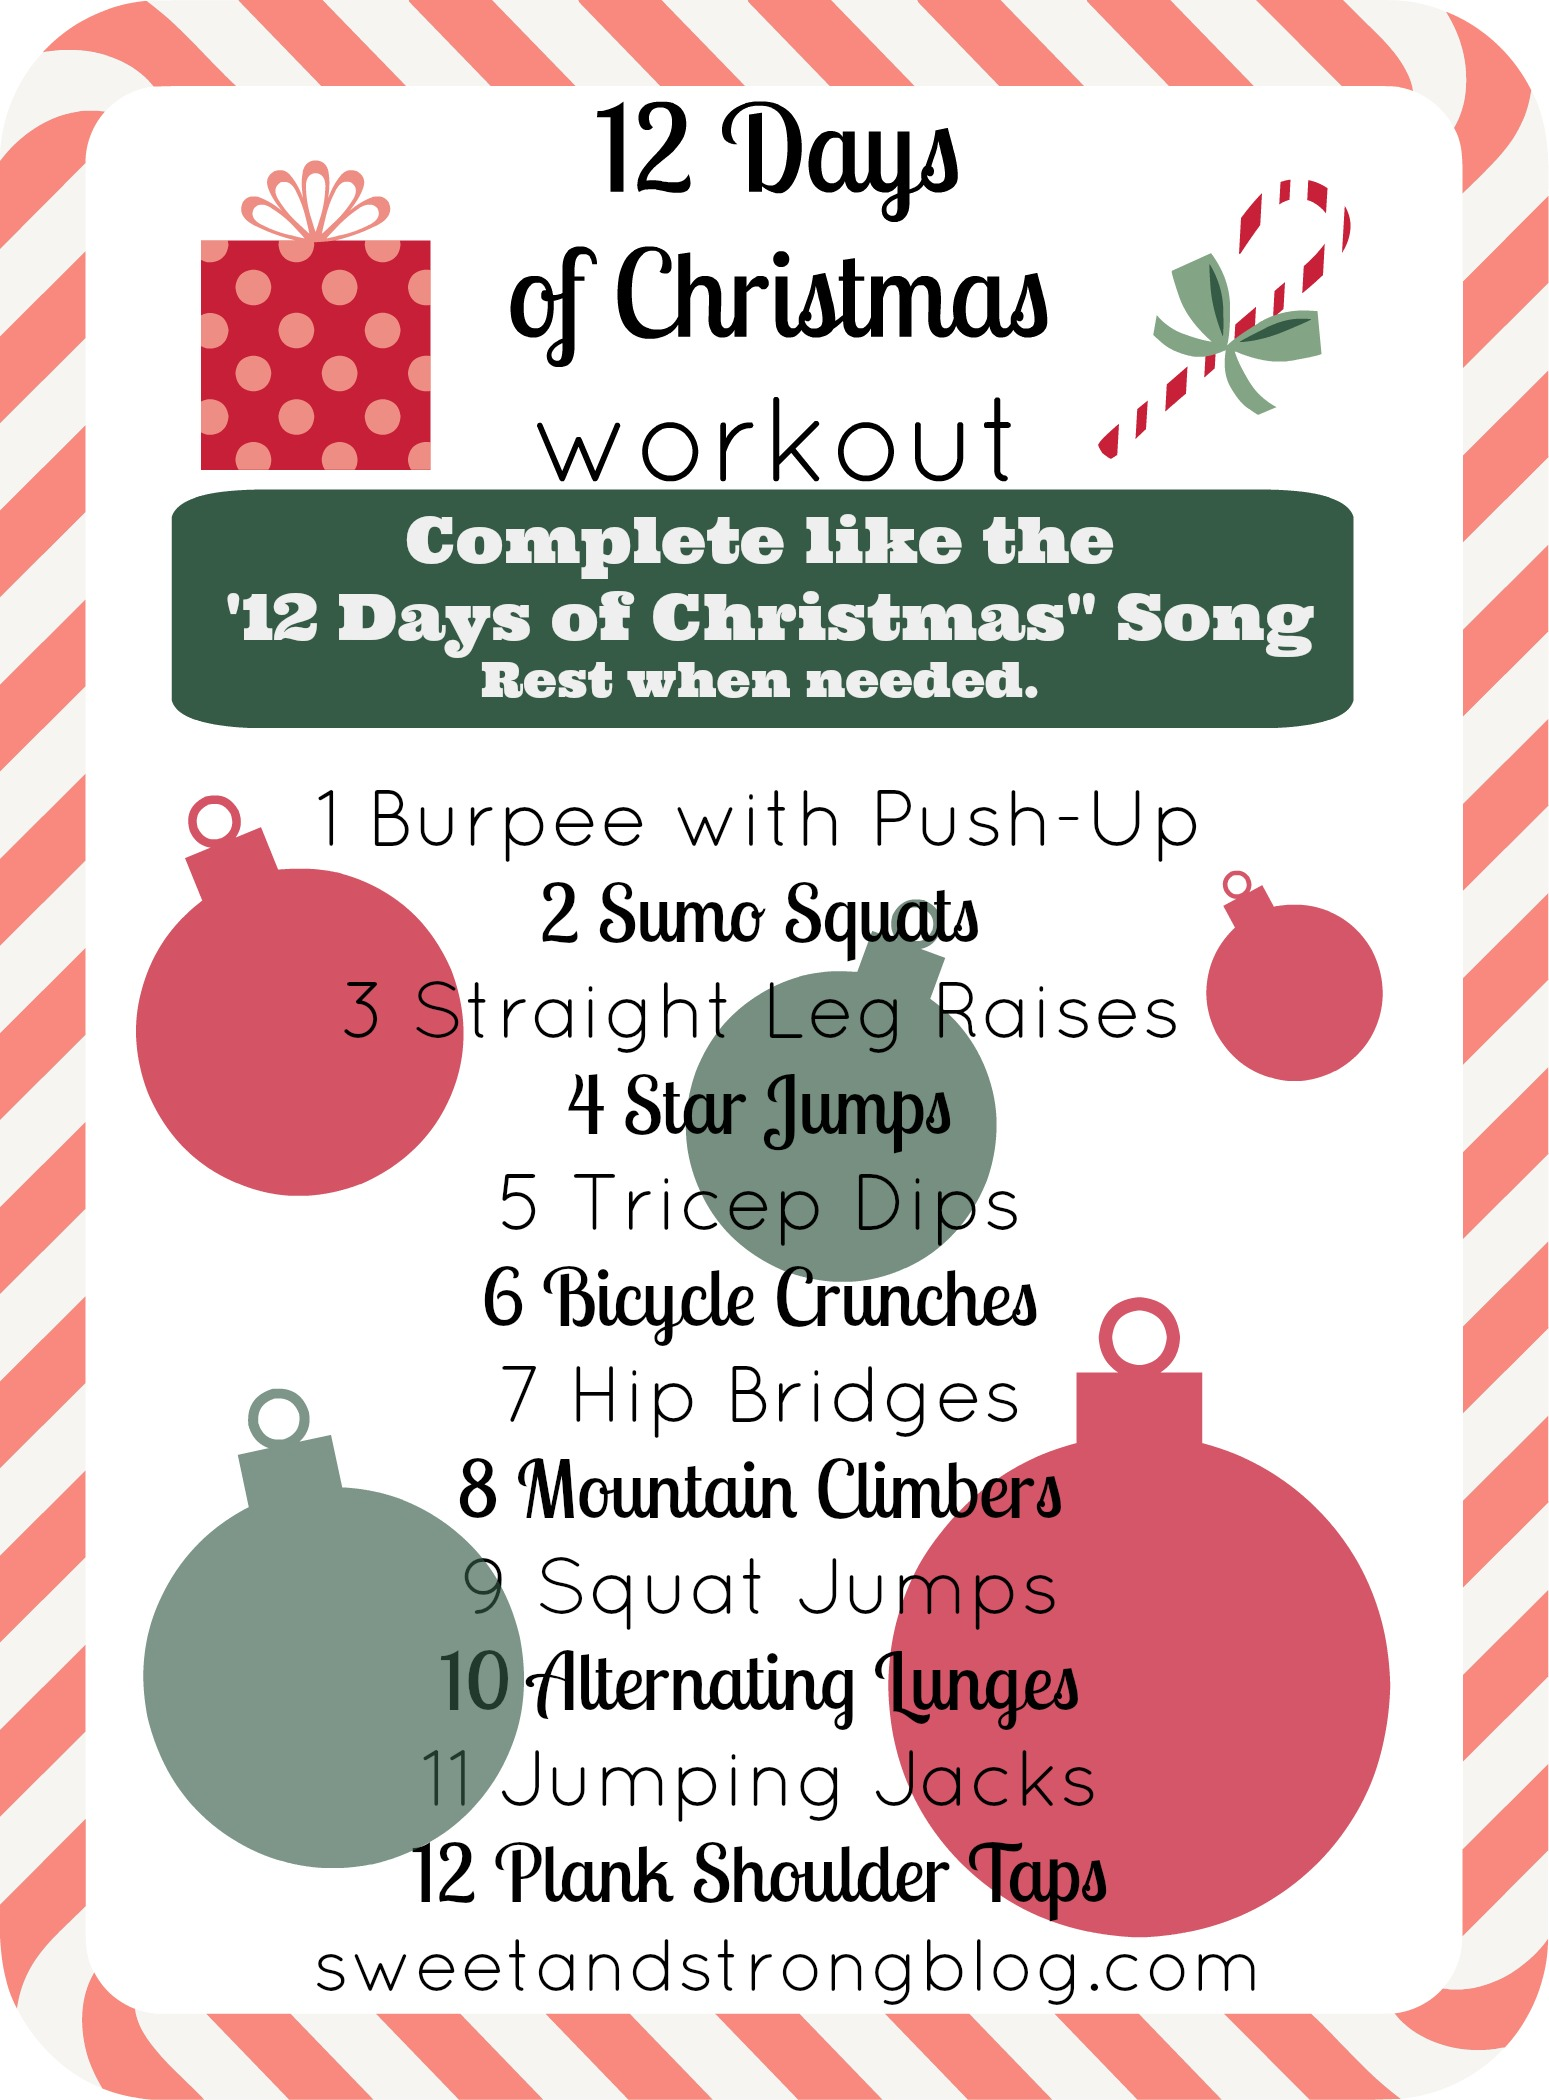 12 Days Of Christmas No Equipment Necessary Total Body Workout Work On Your Arms